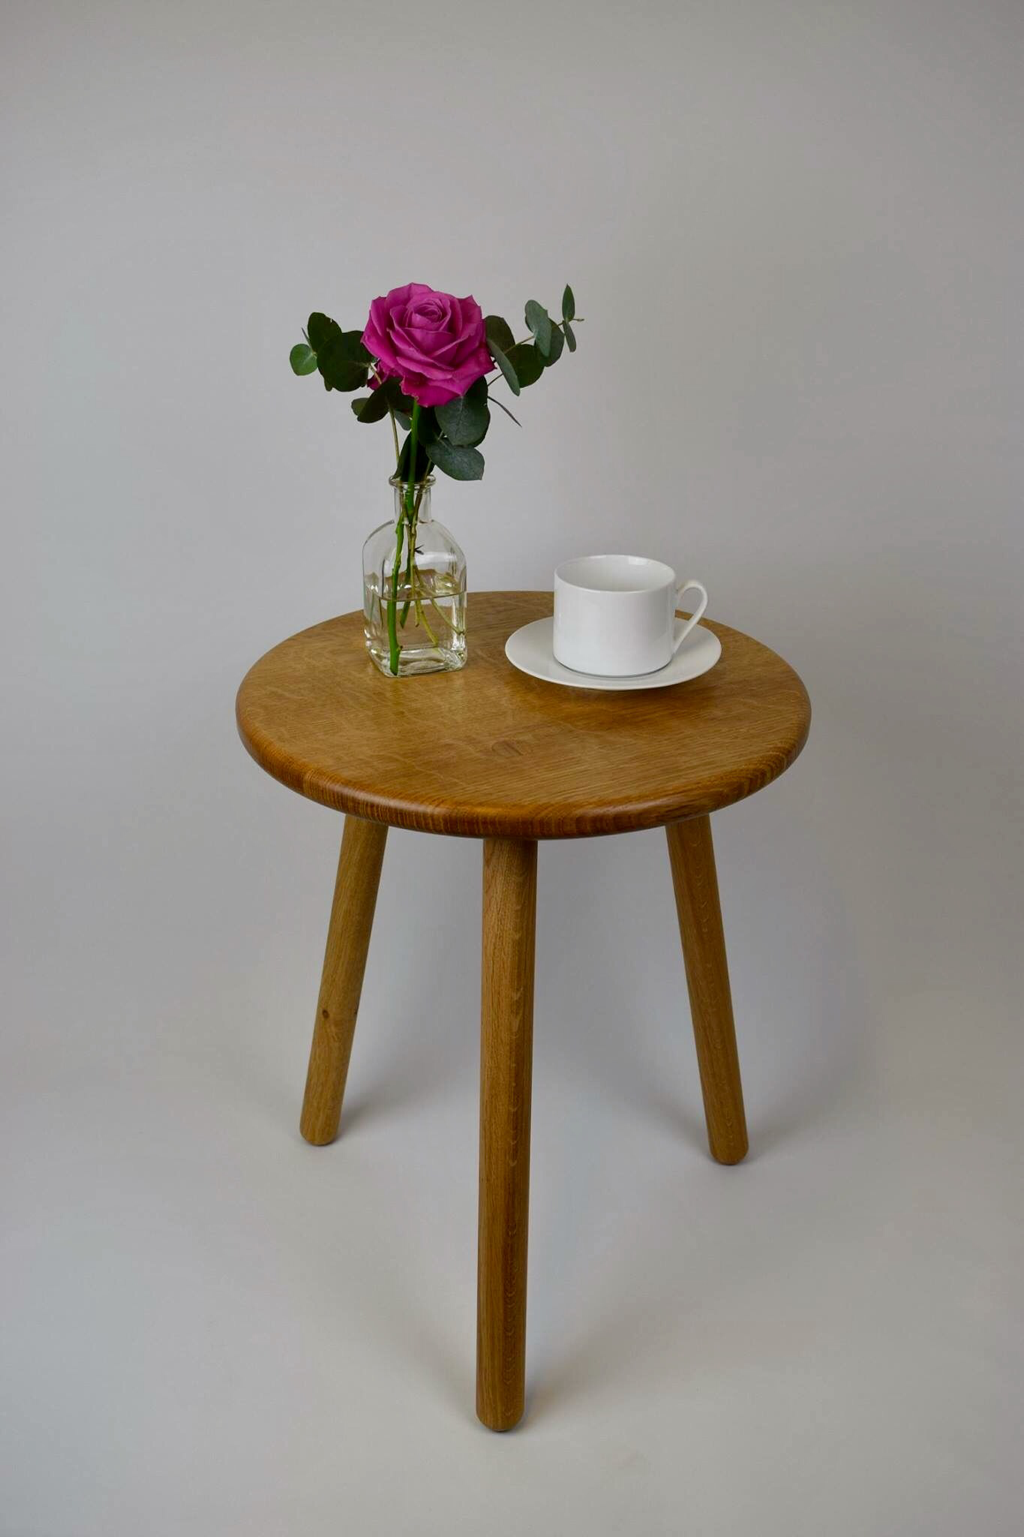 Stable Occasional Table made from sustainably sourced oak by David Stephenson in Hampshire UK